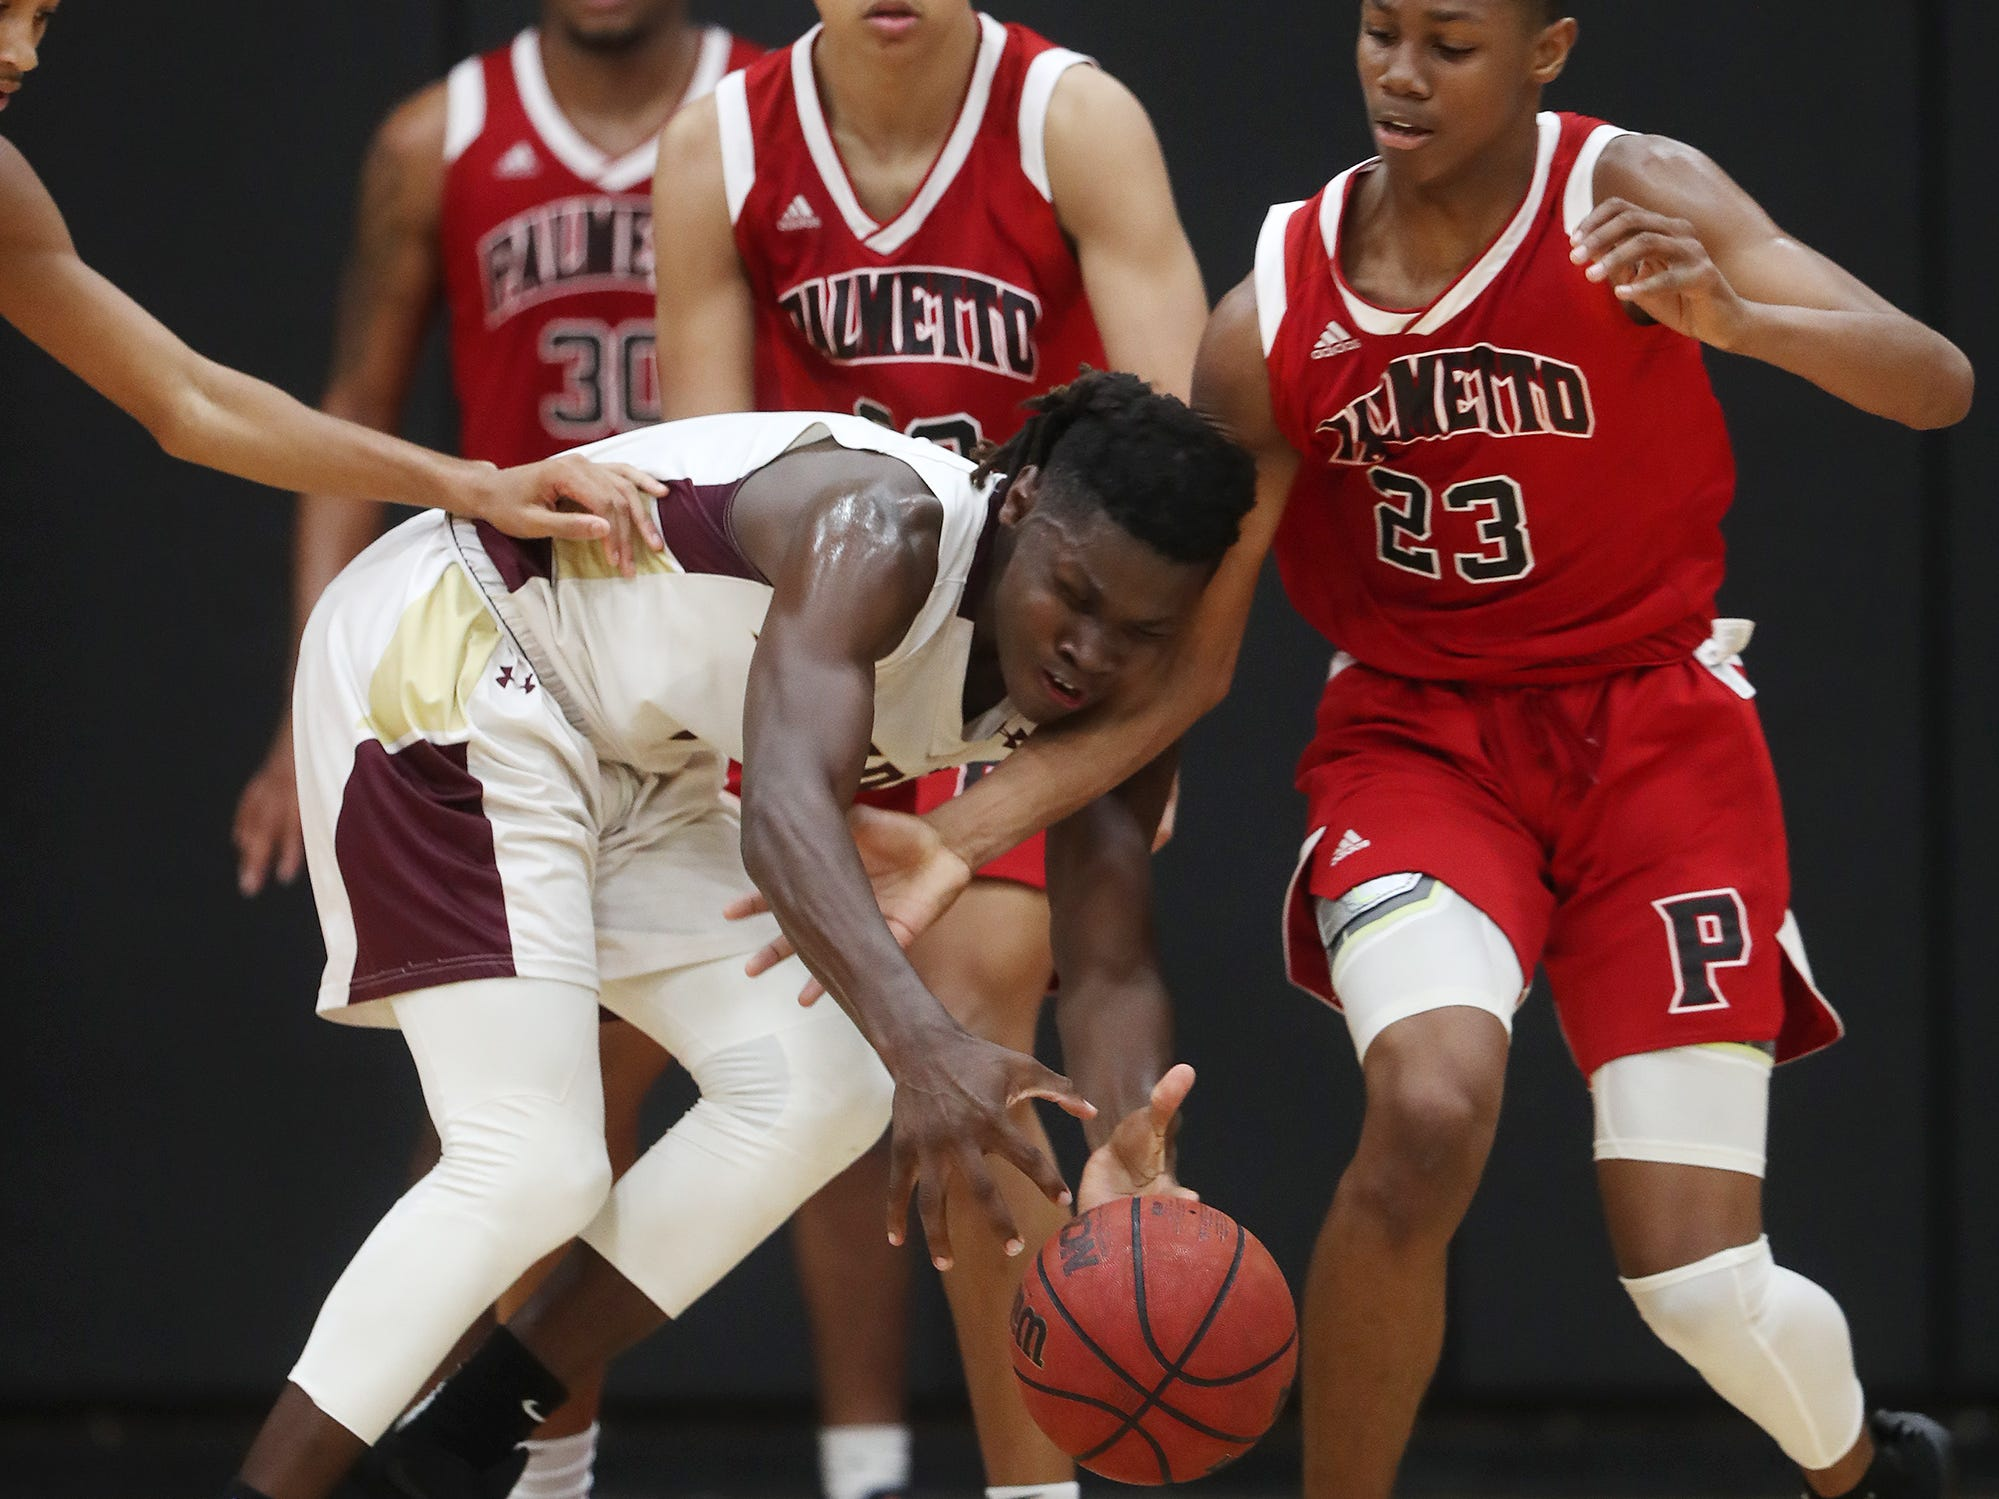 Riverdale High School's Keyshawn Rowe hustles for a loose ball against Palmetto on Thursday in the Class 8A regional quarterfinal at Riverdale in Fort Myers. Riverdale beat Palmetto 61-54.